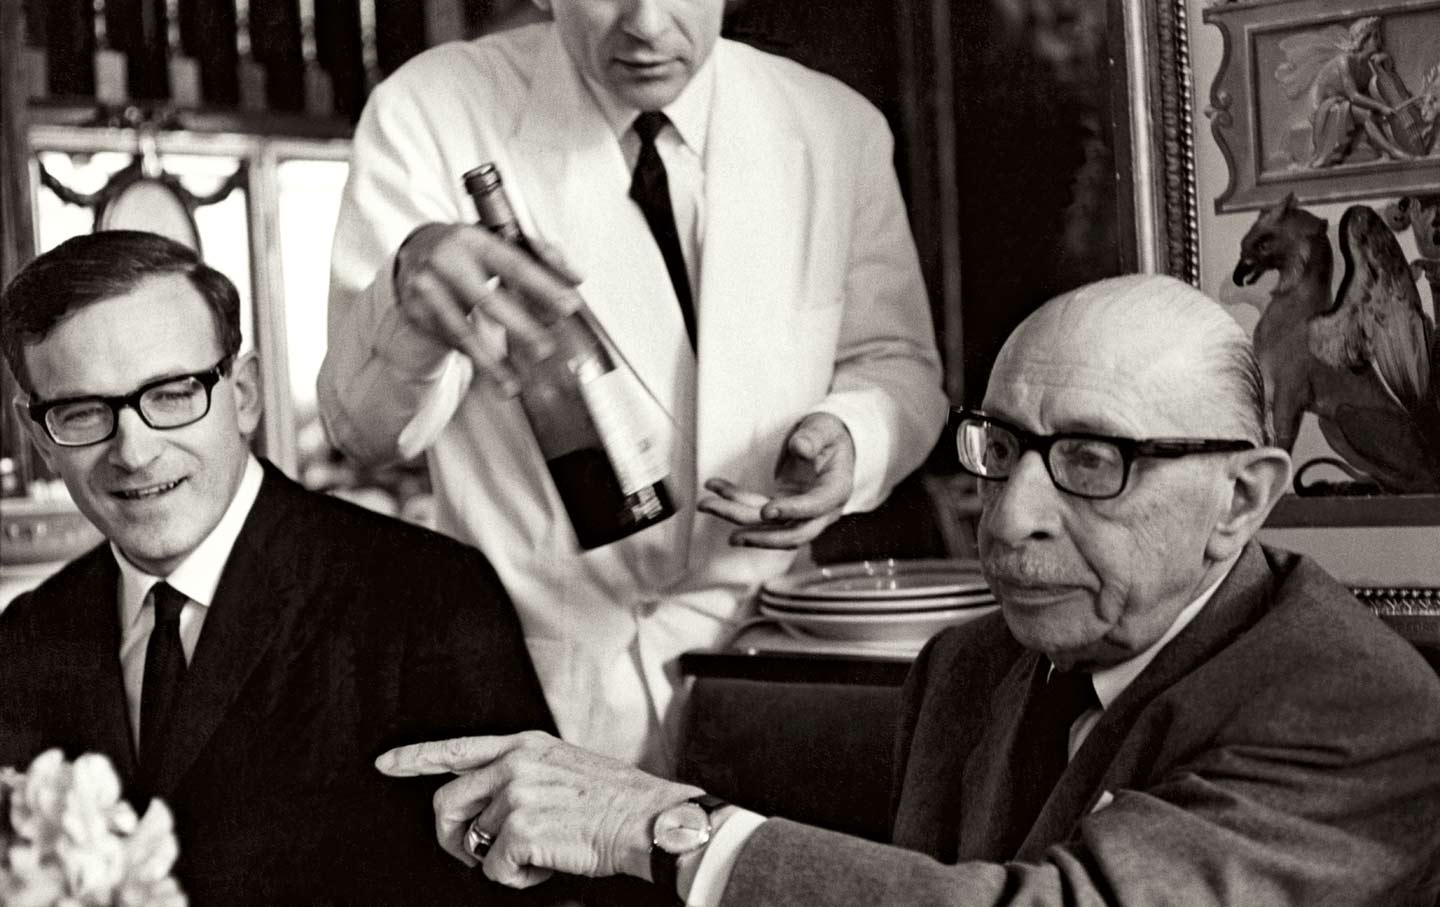 Robert Craft (left) with Igor Stravinsky in 1966.